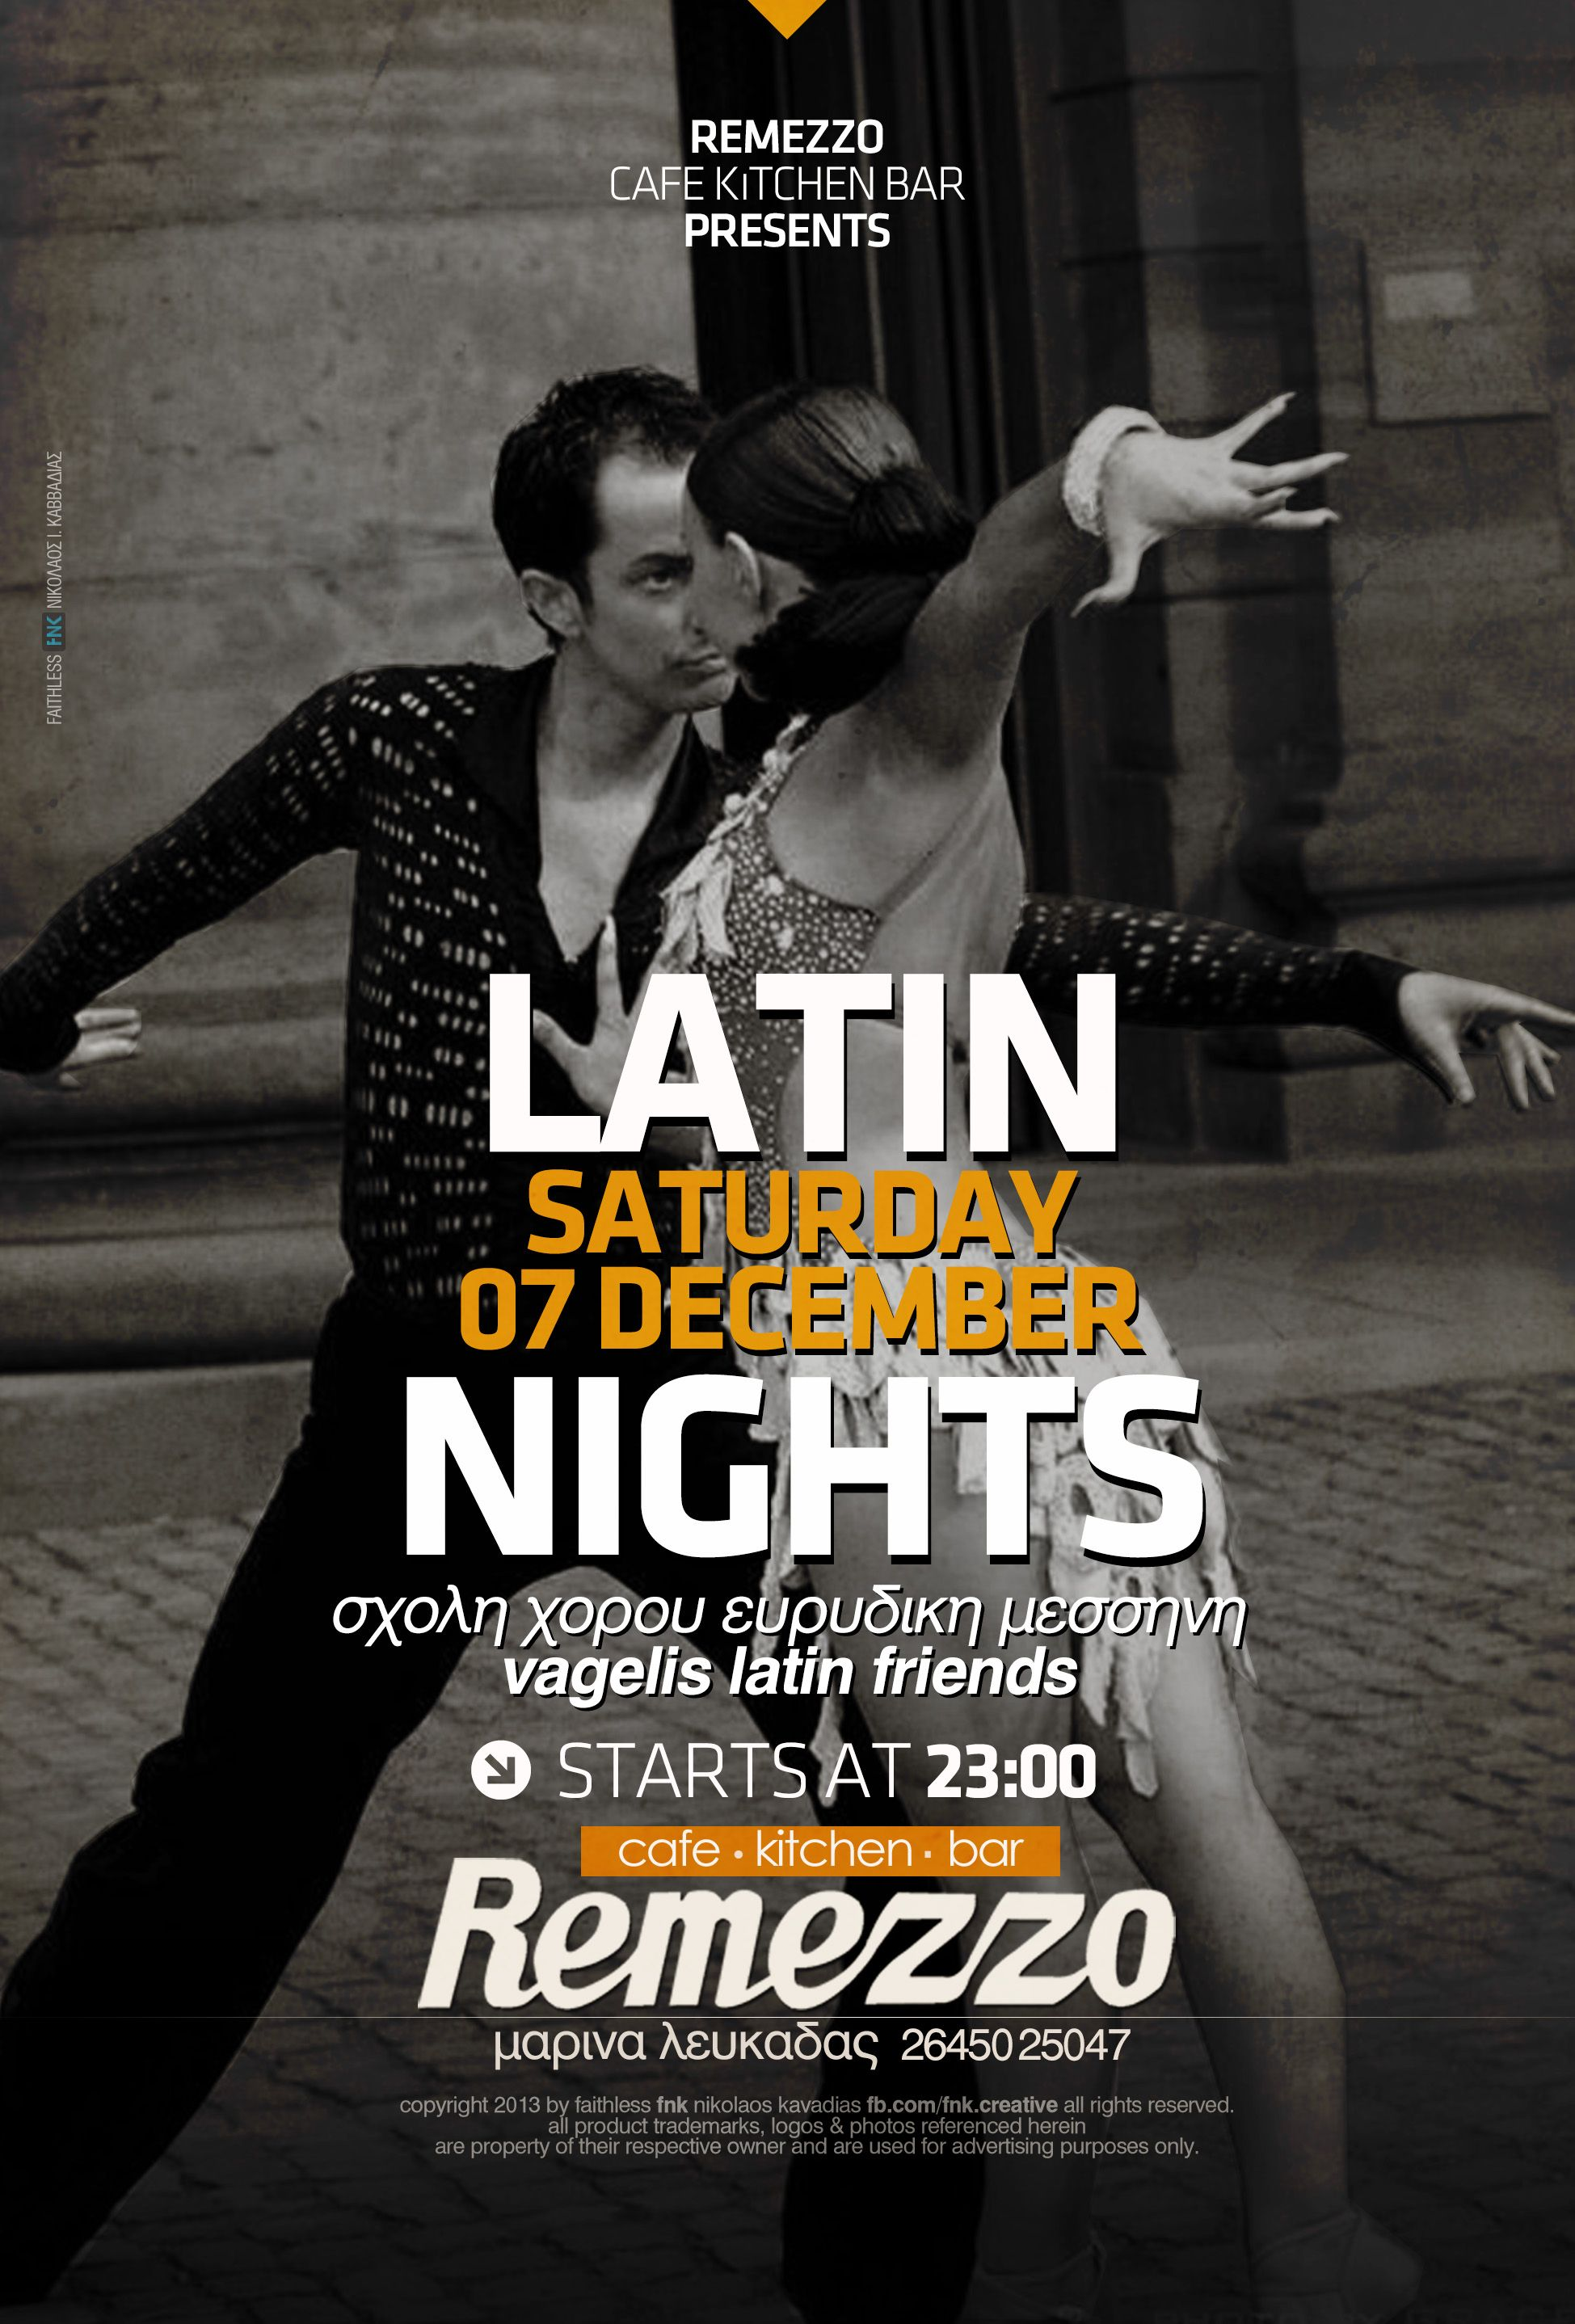 latin nights event poster http://fb.com/fnk.creative | FNK: Event ... for Creative Event Posters  66pct